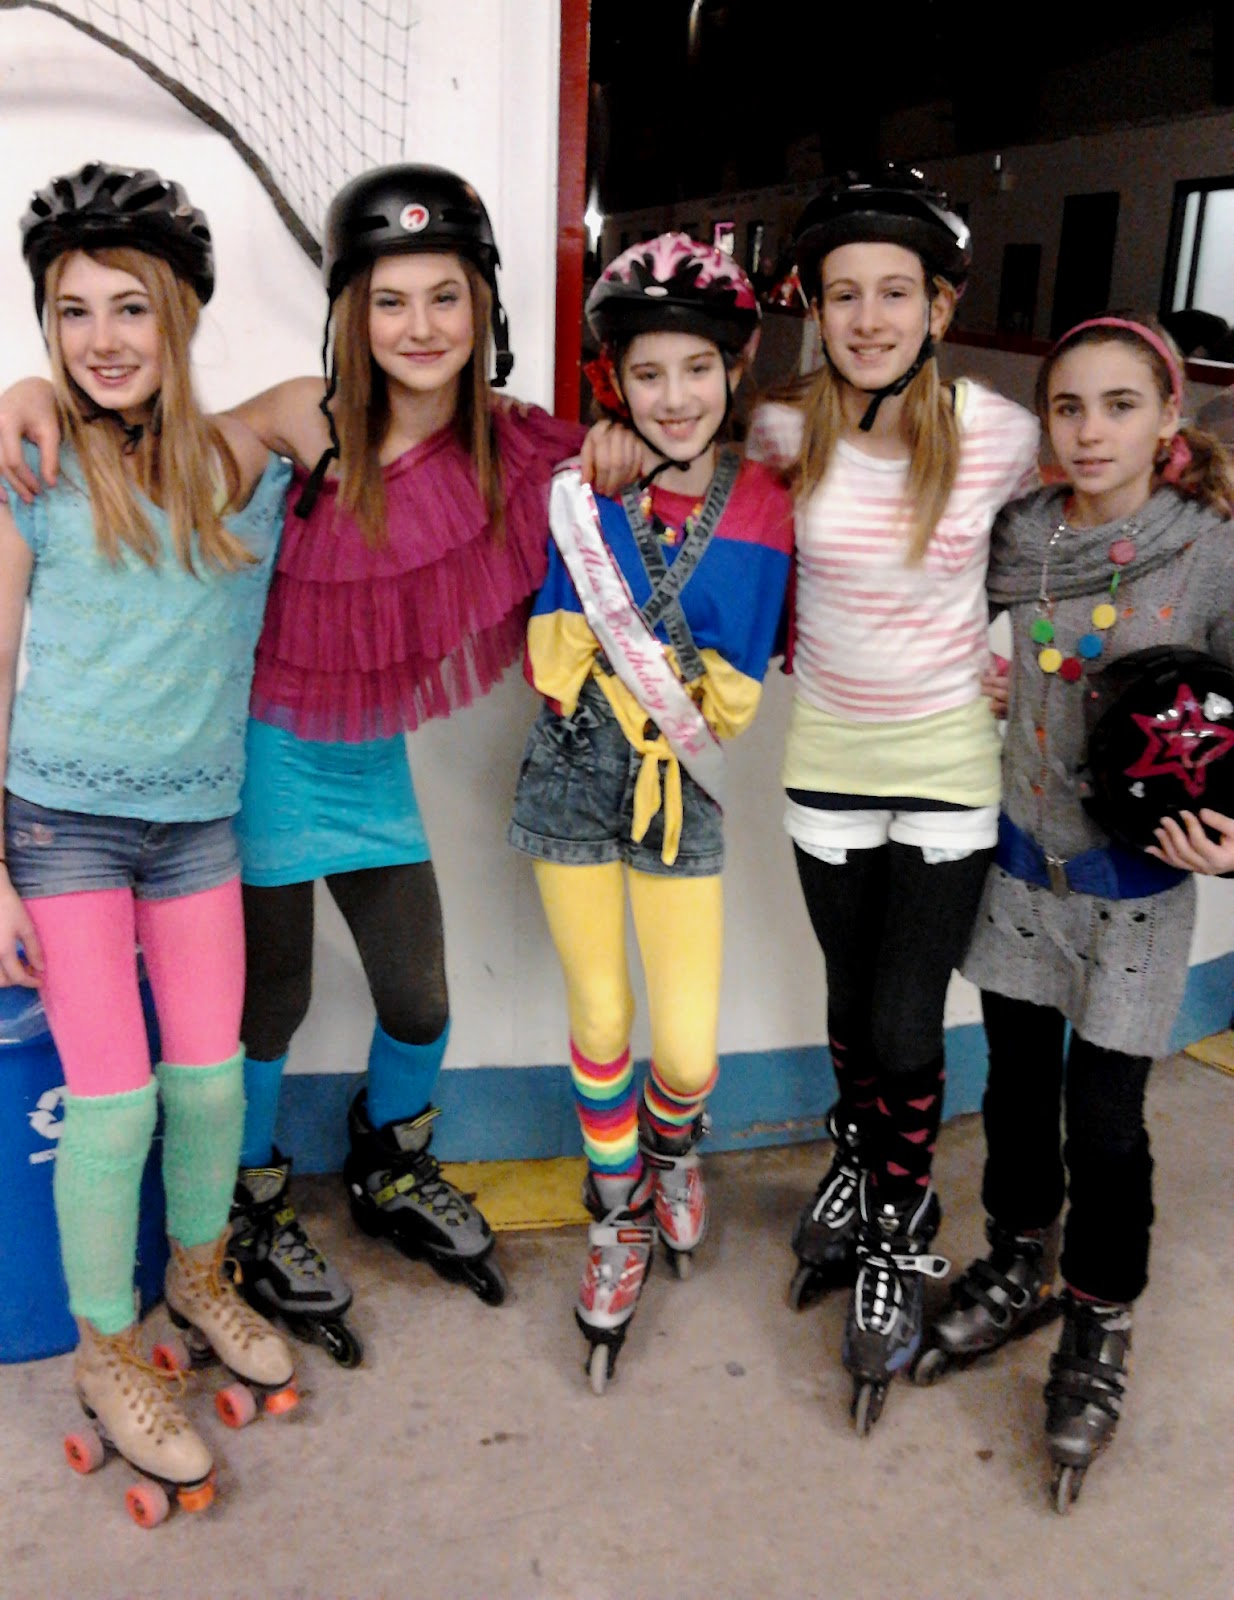 Forest City Fashionista Sunday Afternoon at the Roller Rink